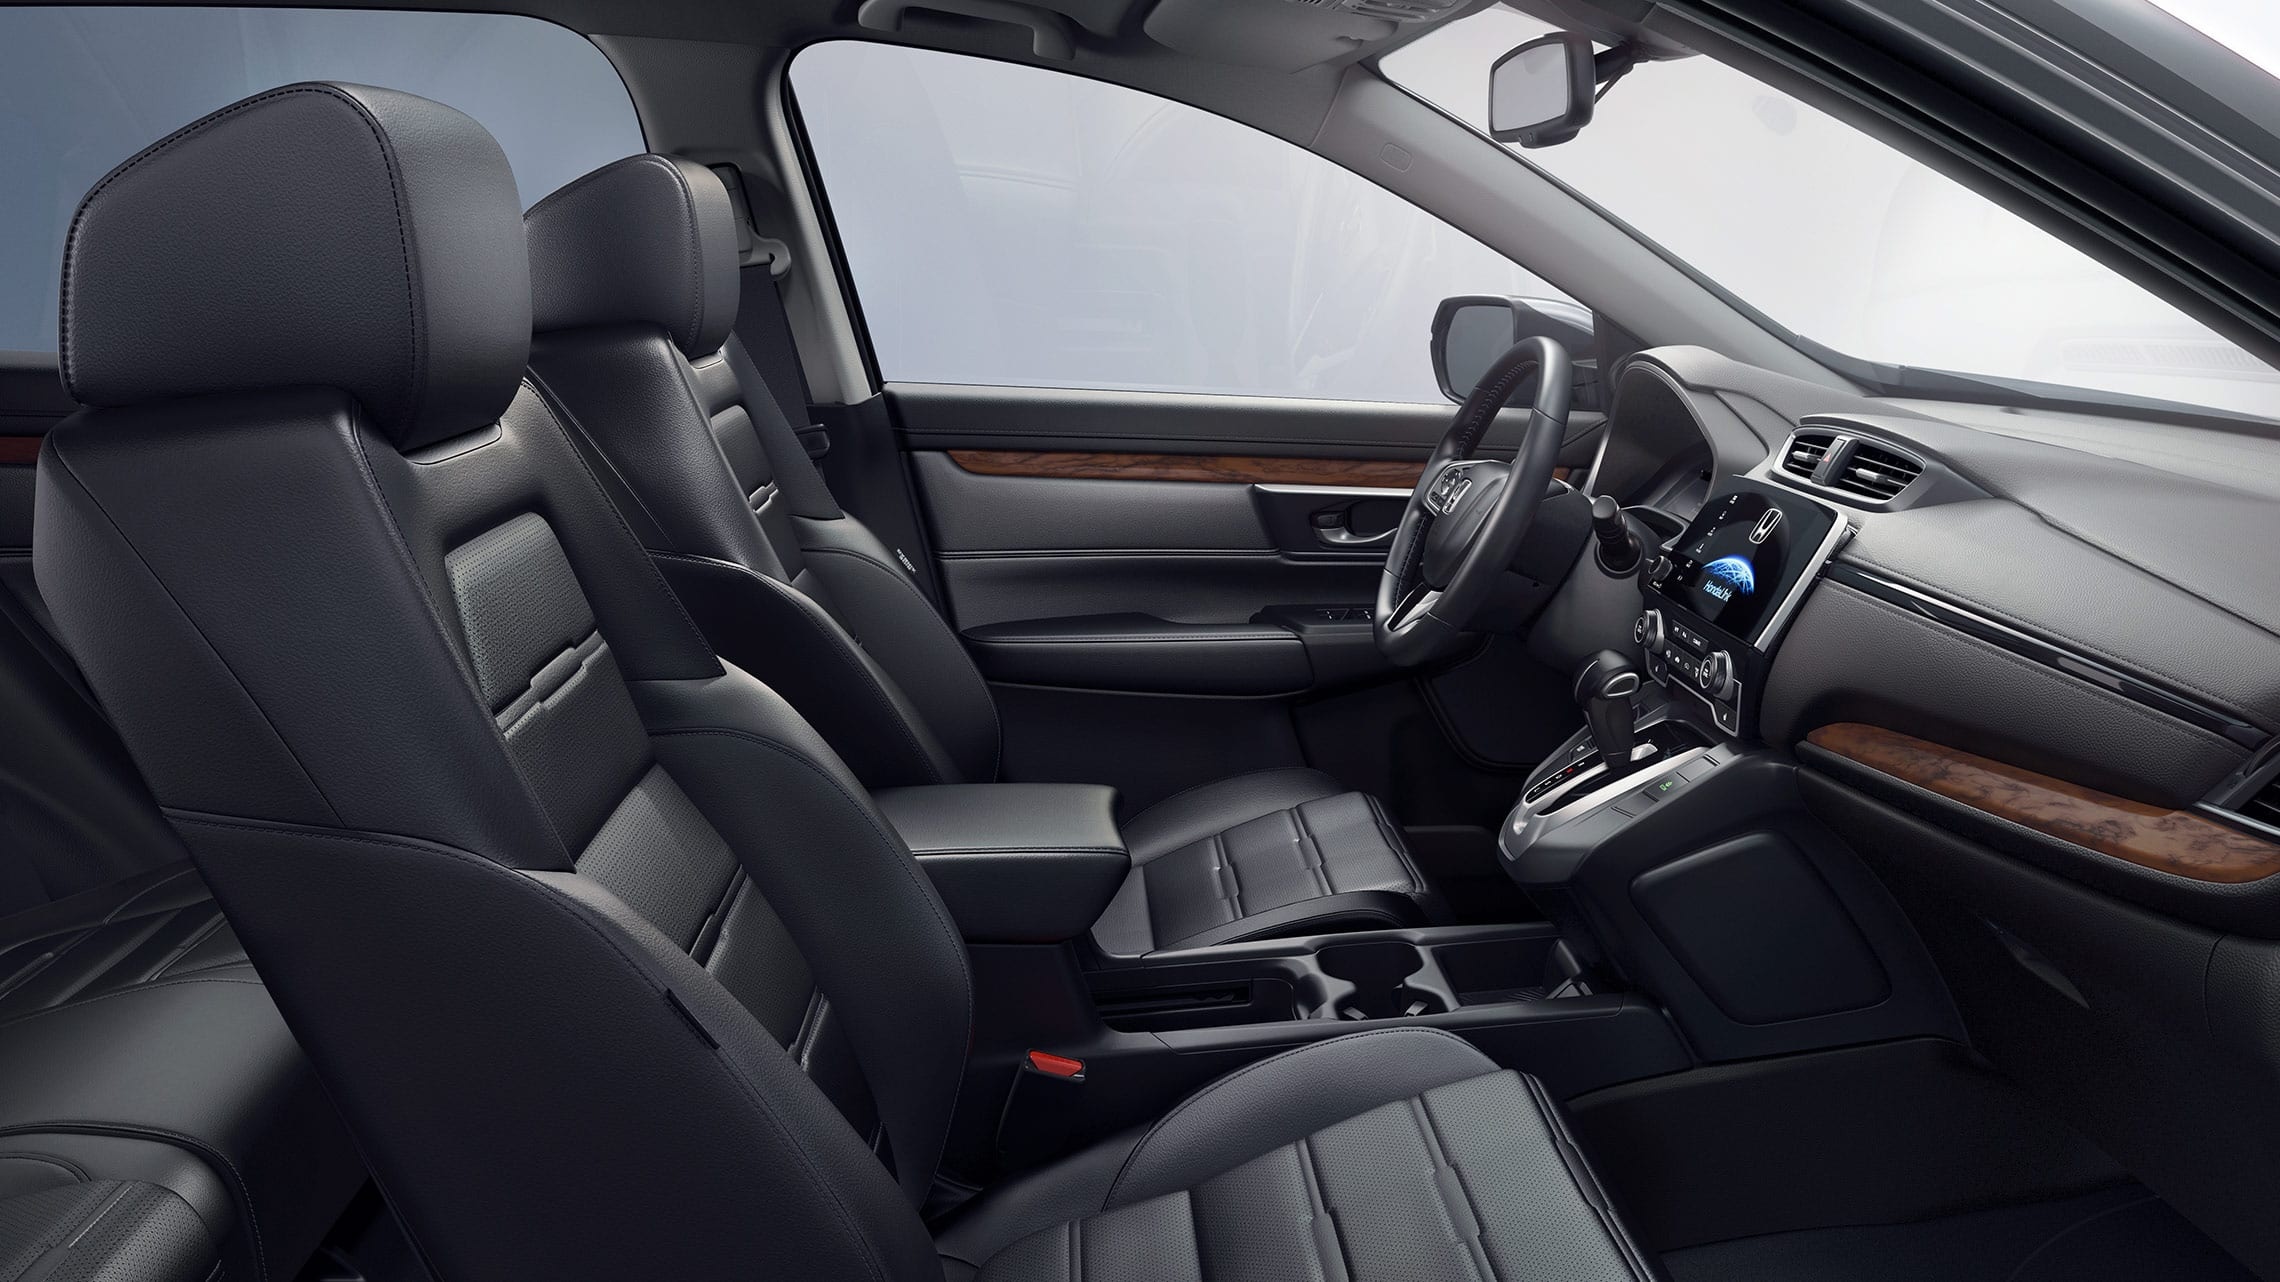 2019 Honda CR-V Touring with leather-trimmed interior.